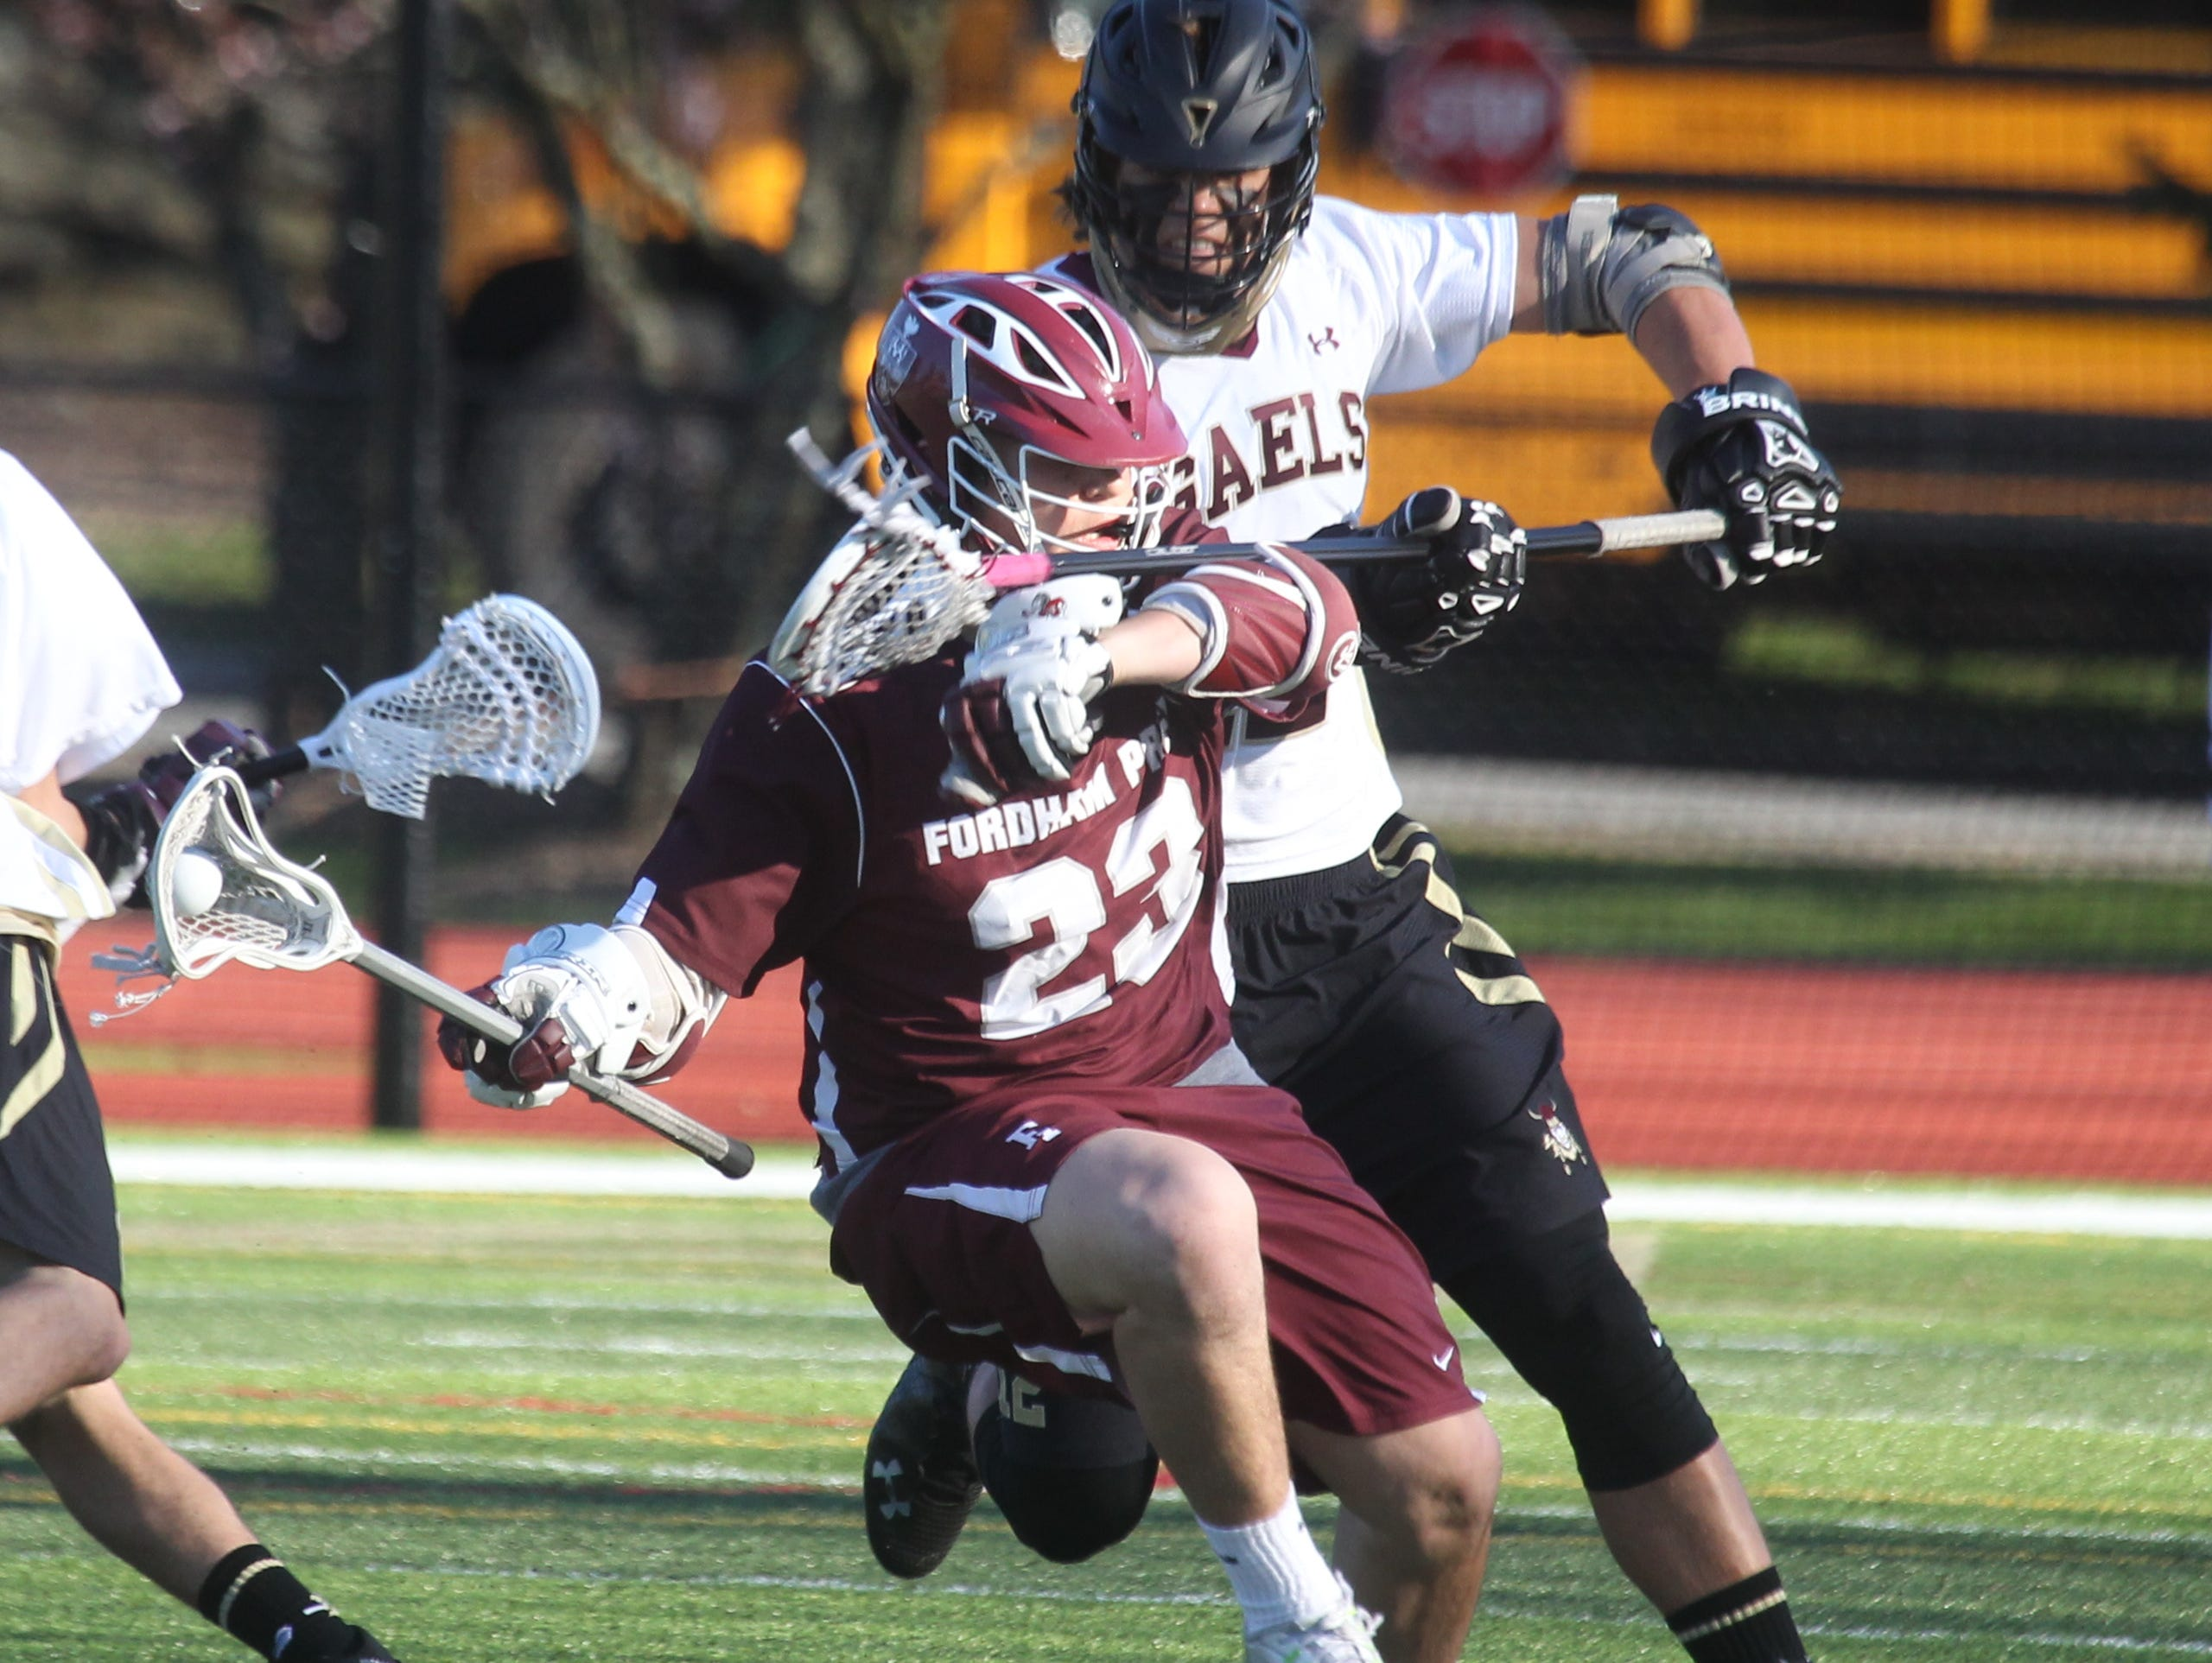 Fordham Prep's Edward Madden is pressured by Iona Prep's Zach Kryza during their game at Iona Prep April 15, 2016. Fordham Prep won 8-7.